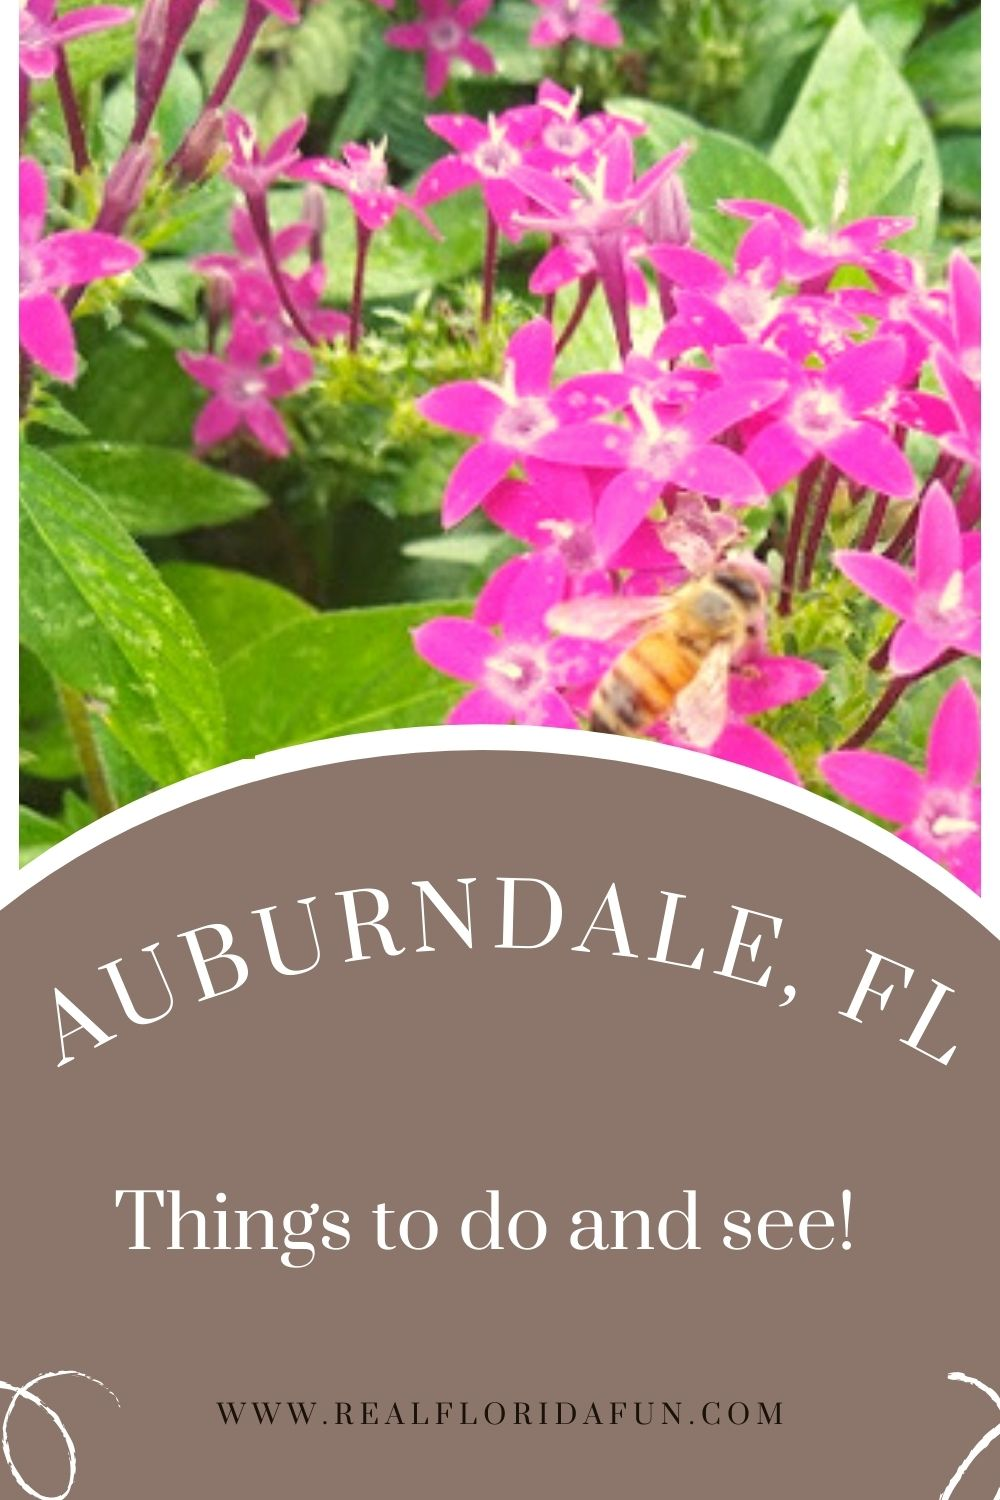 Visiting Auburndale, Florida? This quaint town just 30 minutes from Orlando offers a variety of things to do and see!